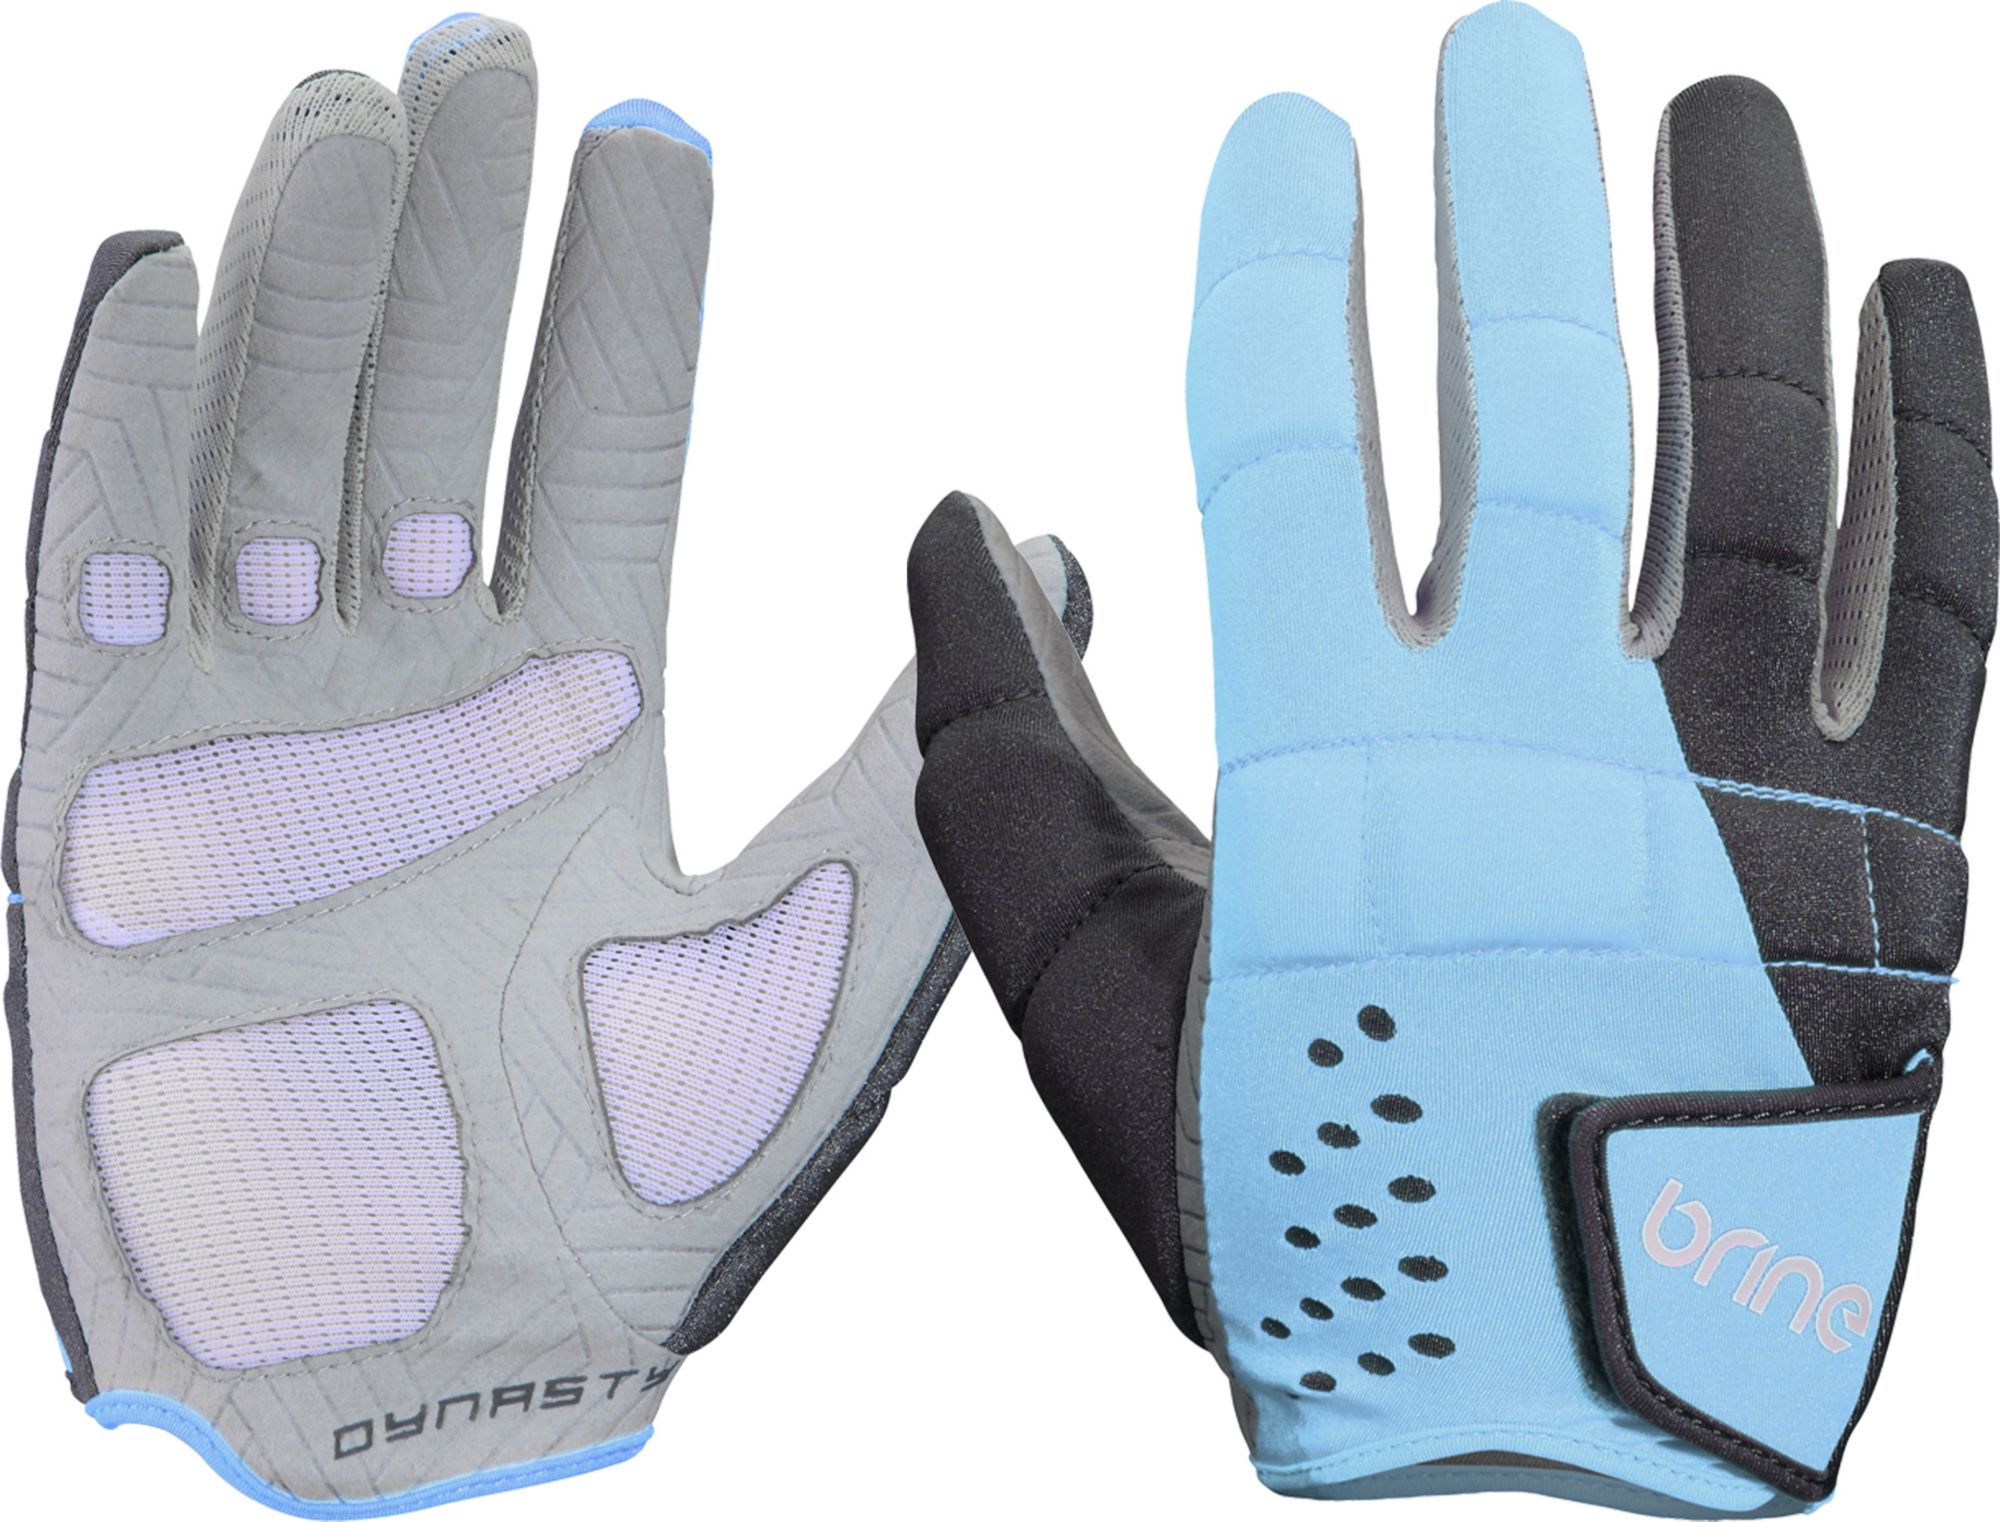 Brine Women's Dynasty - The Most Affordable Lacrosse Gloves for Female Lacrosse